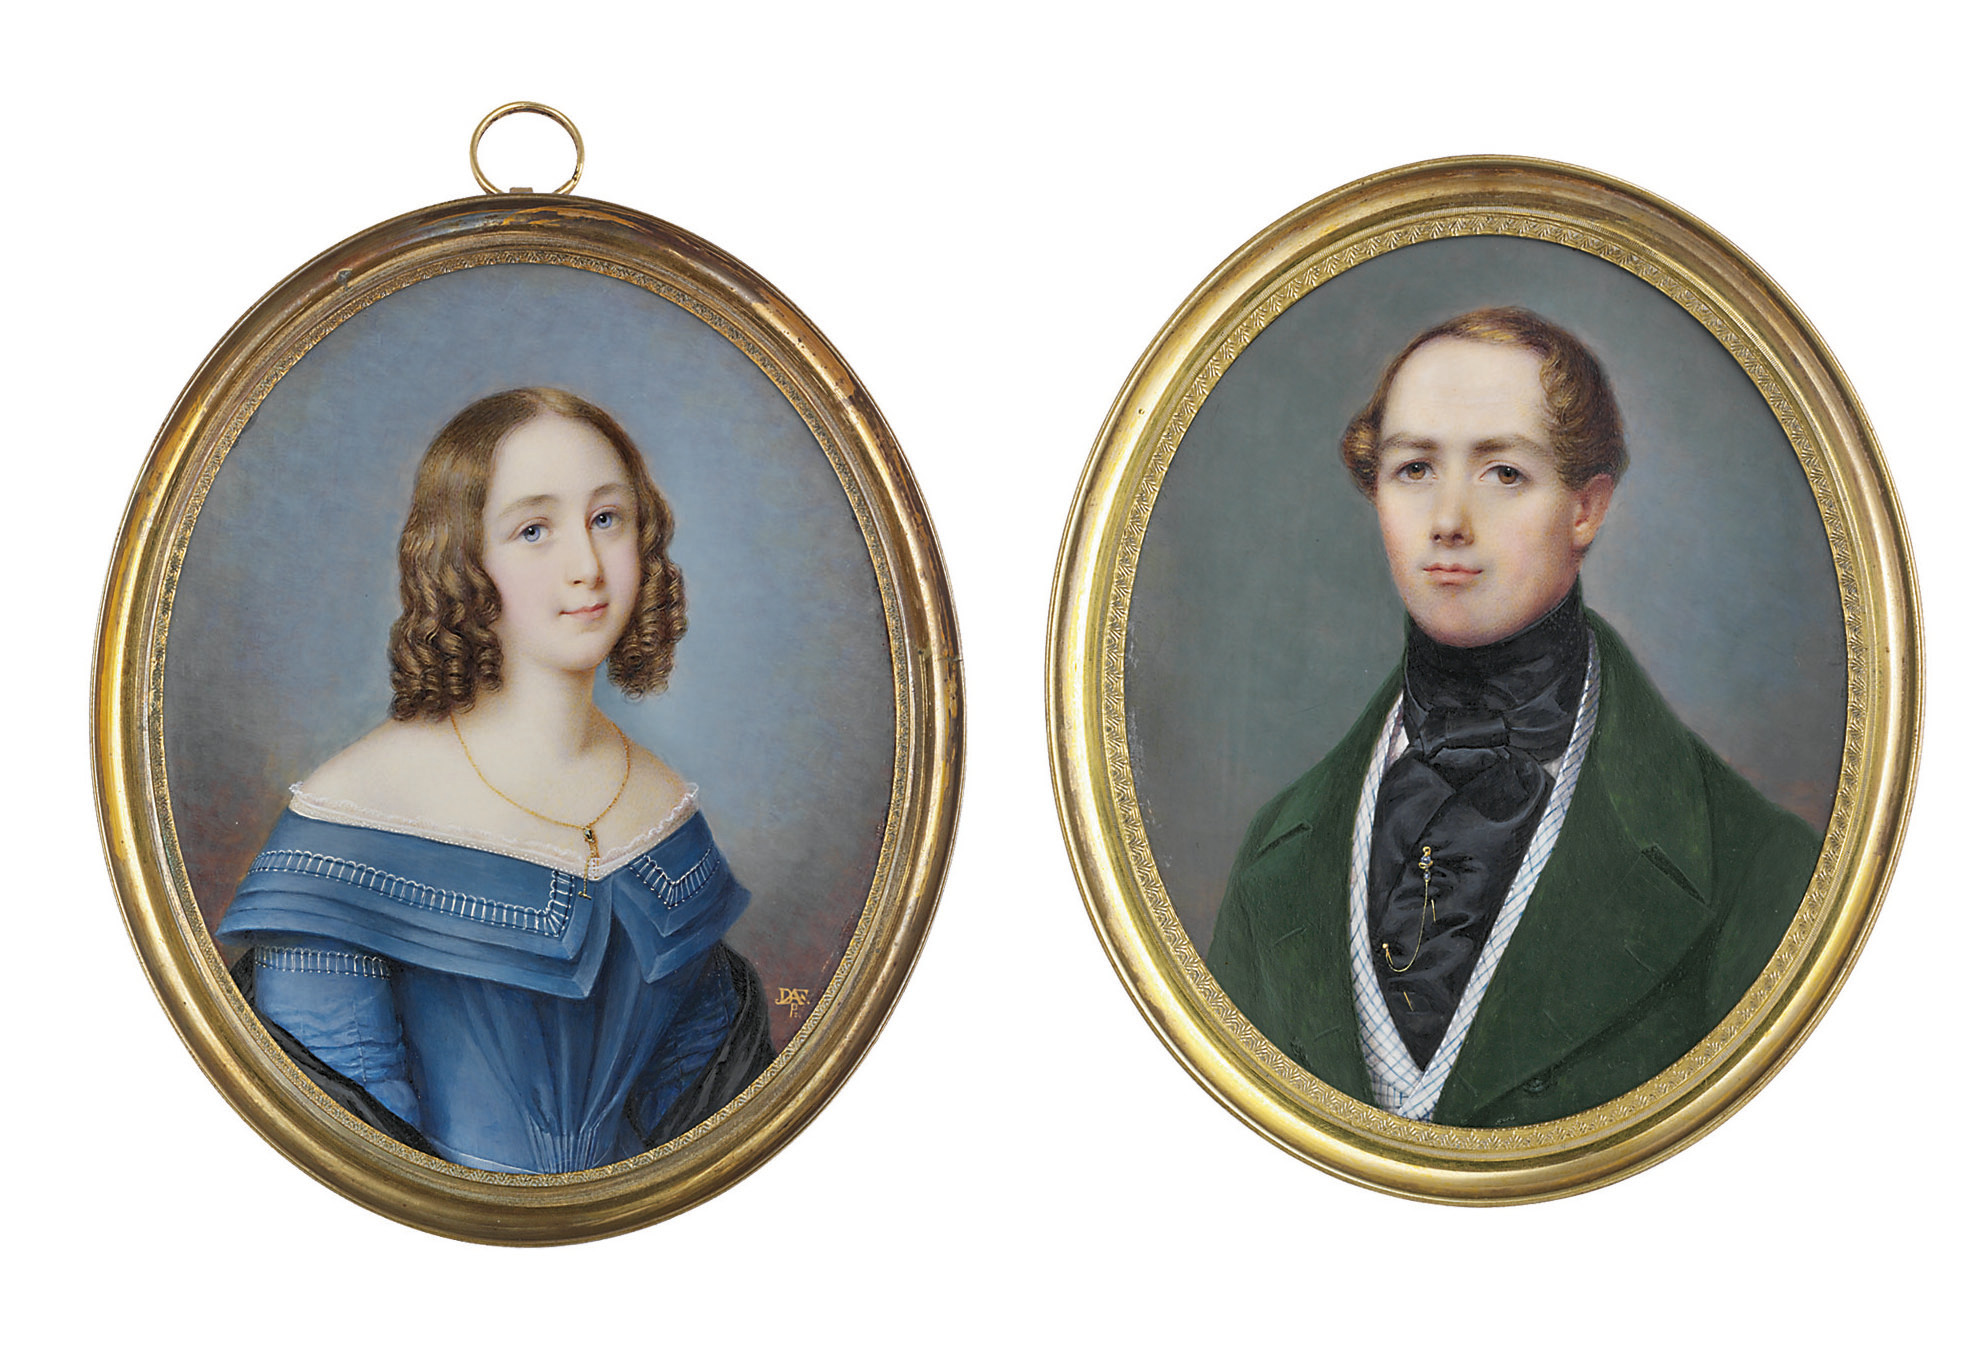 A pair of miniatures: a young lady, in slate blue décolleté dress with white embroidery decorating the ruched sleeves and double collar, white lace about the neckline, black satin stole, gem-set gold watch chain necklace, her chestnut hair dressed in ringlets; together with a young gentleman, in forest green coat, blue-checked waistcoat, black satin cravat, jewelled gold double tie pin, curling chestnut hair